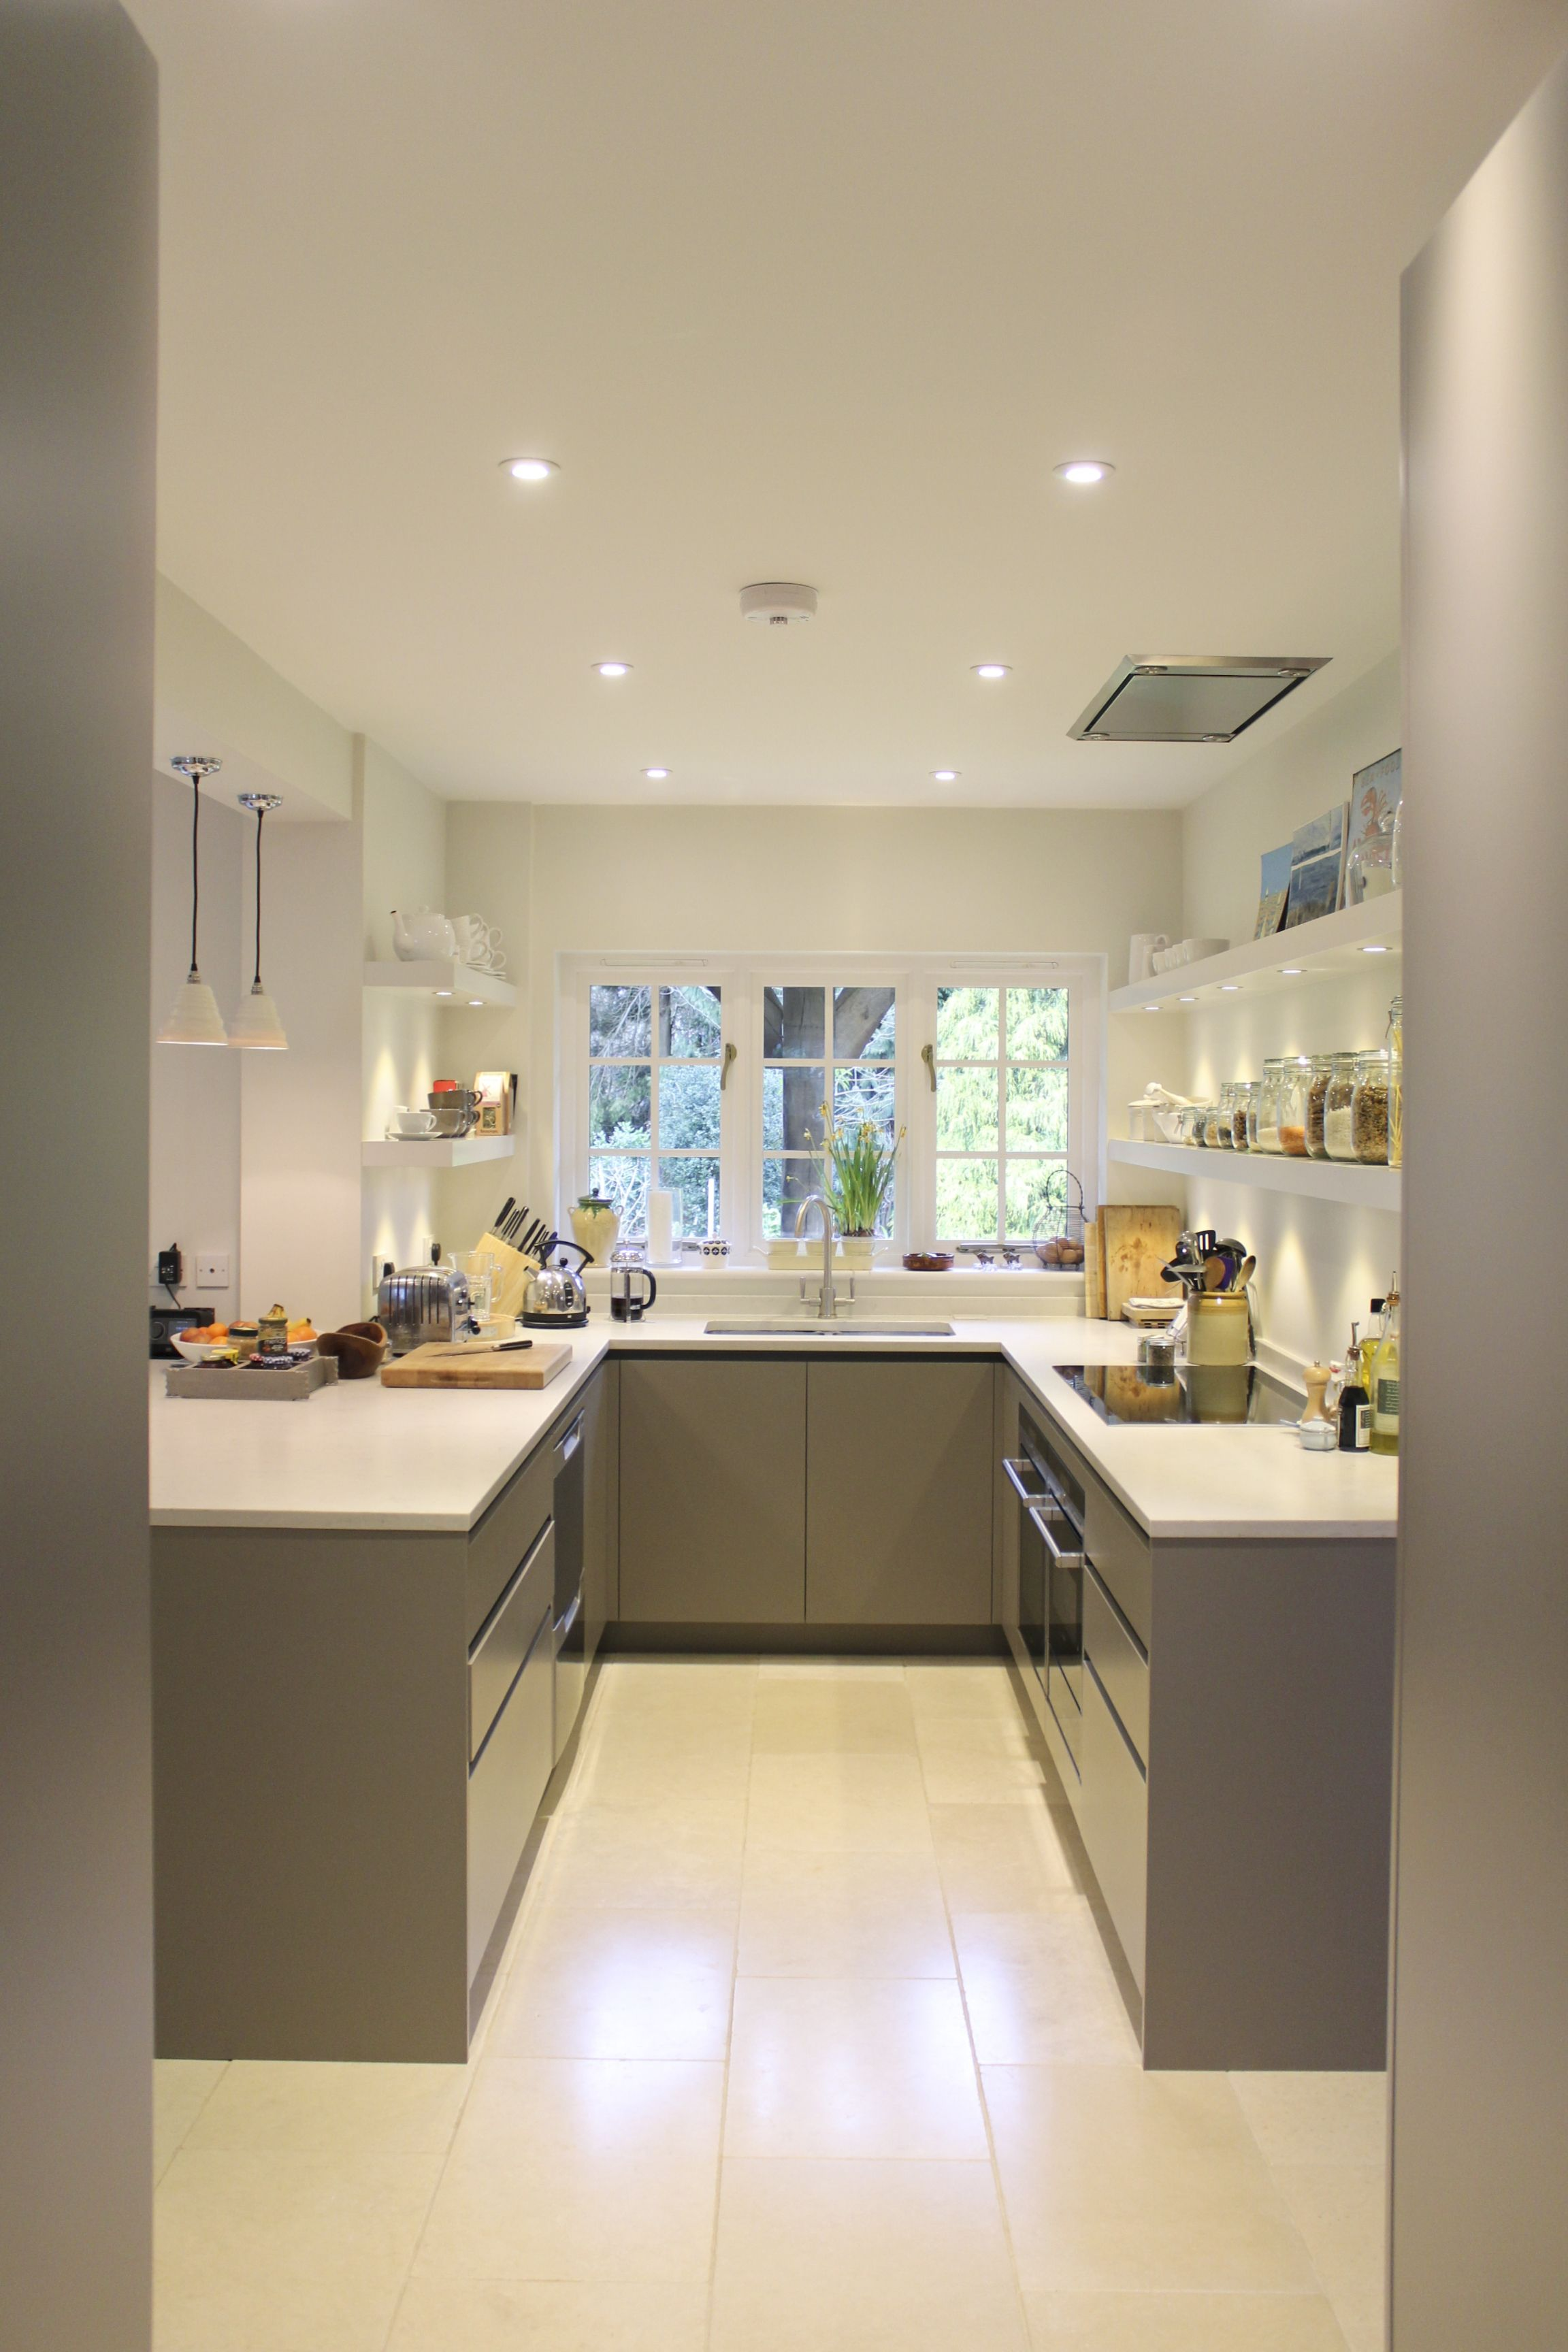 Small Designer Kitchens Gorgeous Small But Perfectly Formed Bespoke Roundhouse Urbo Kitchen Decorating Inspiration